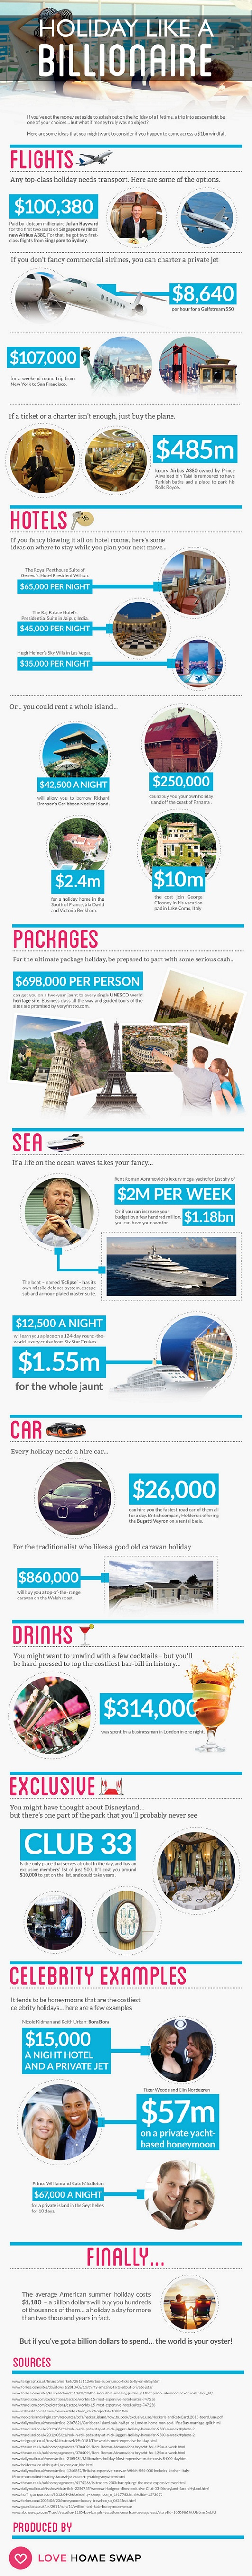 3. Enjoy Holiday like a Billionaire